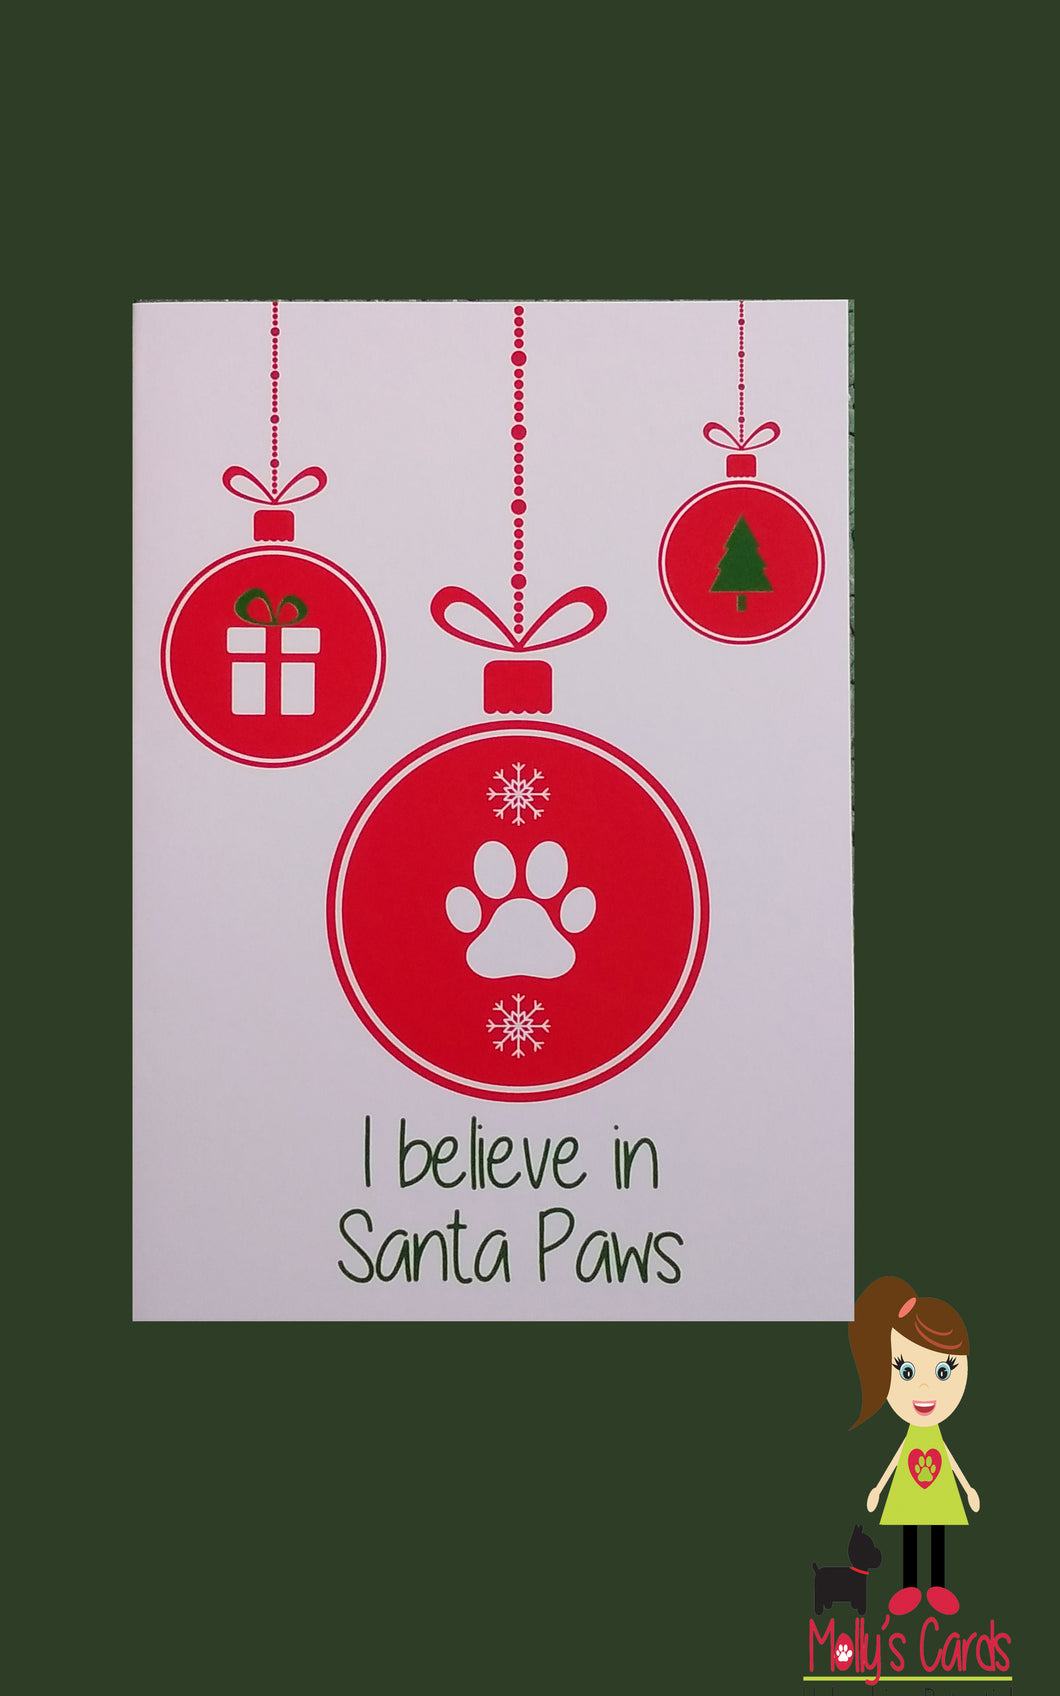 I believe in Santa Paws Christmas card